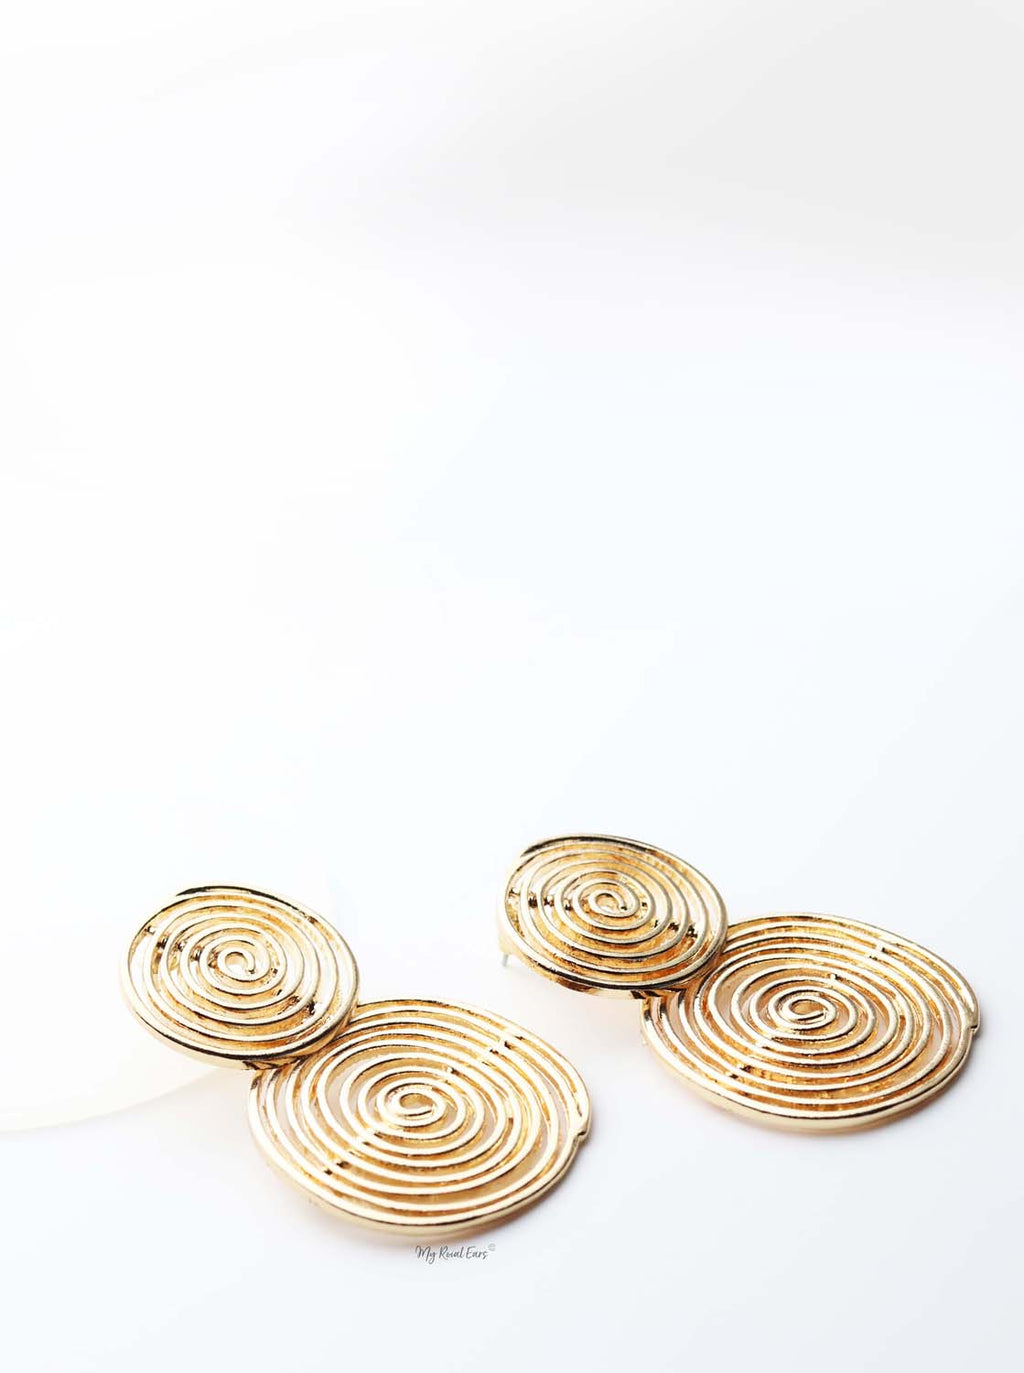 Astraea- gold plated spiral double circle hoop earrings - My Roial Ears LTD